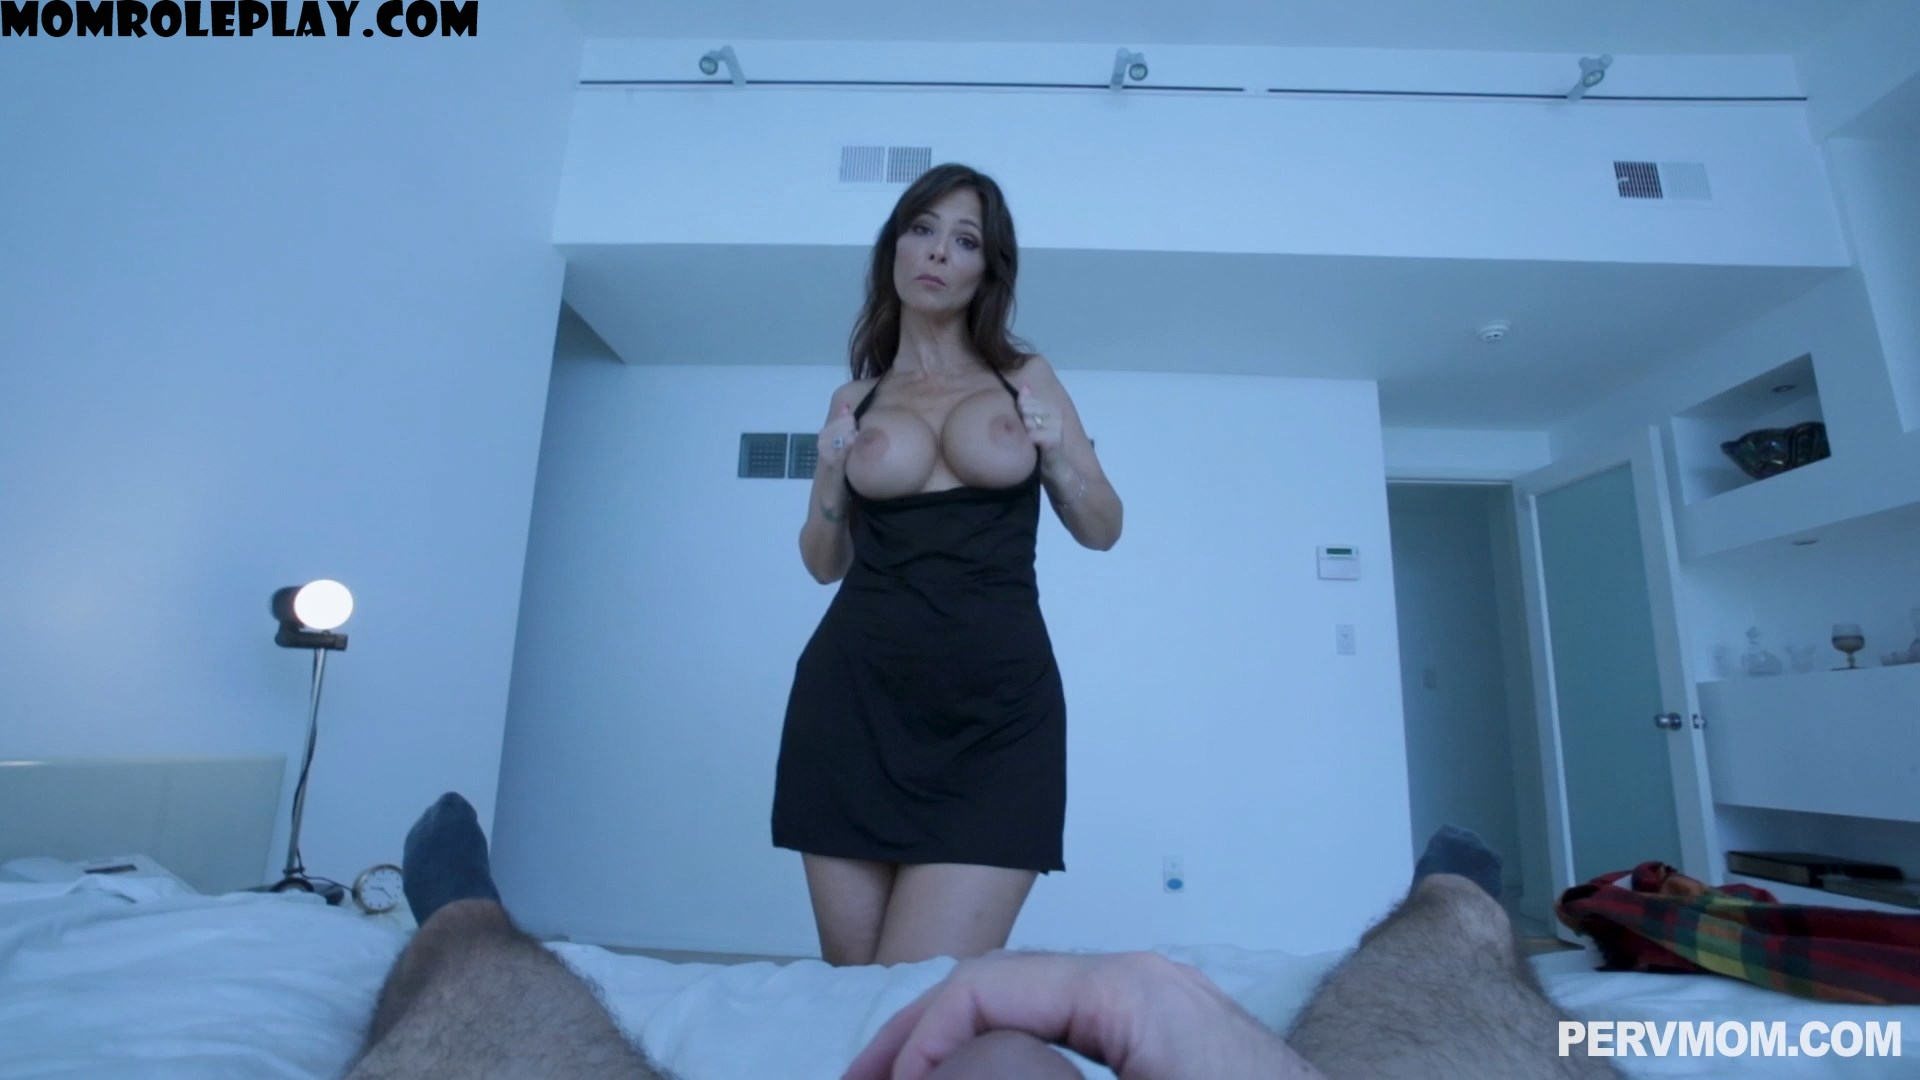 Perv Mom - Syren De Mer - I Can't Let Her Sleep Alone 1080p